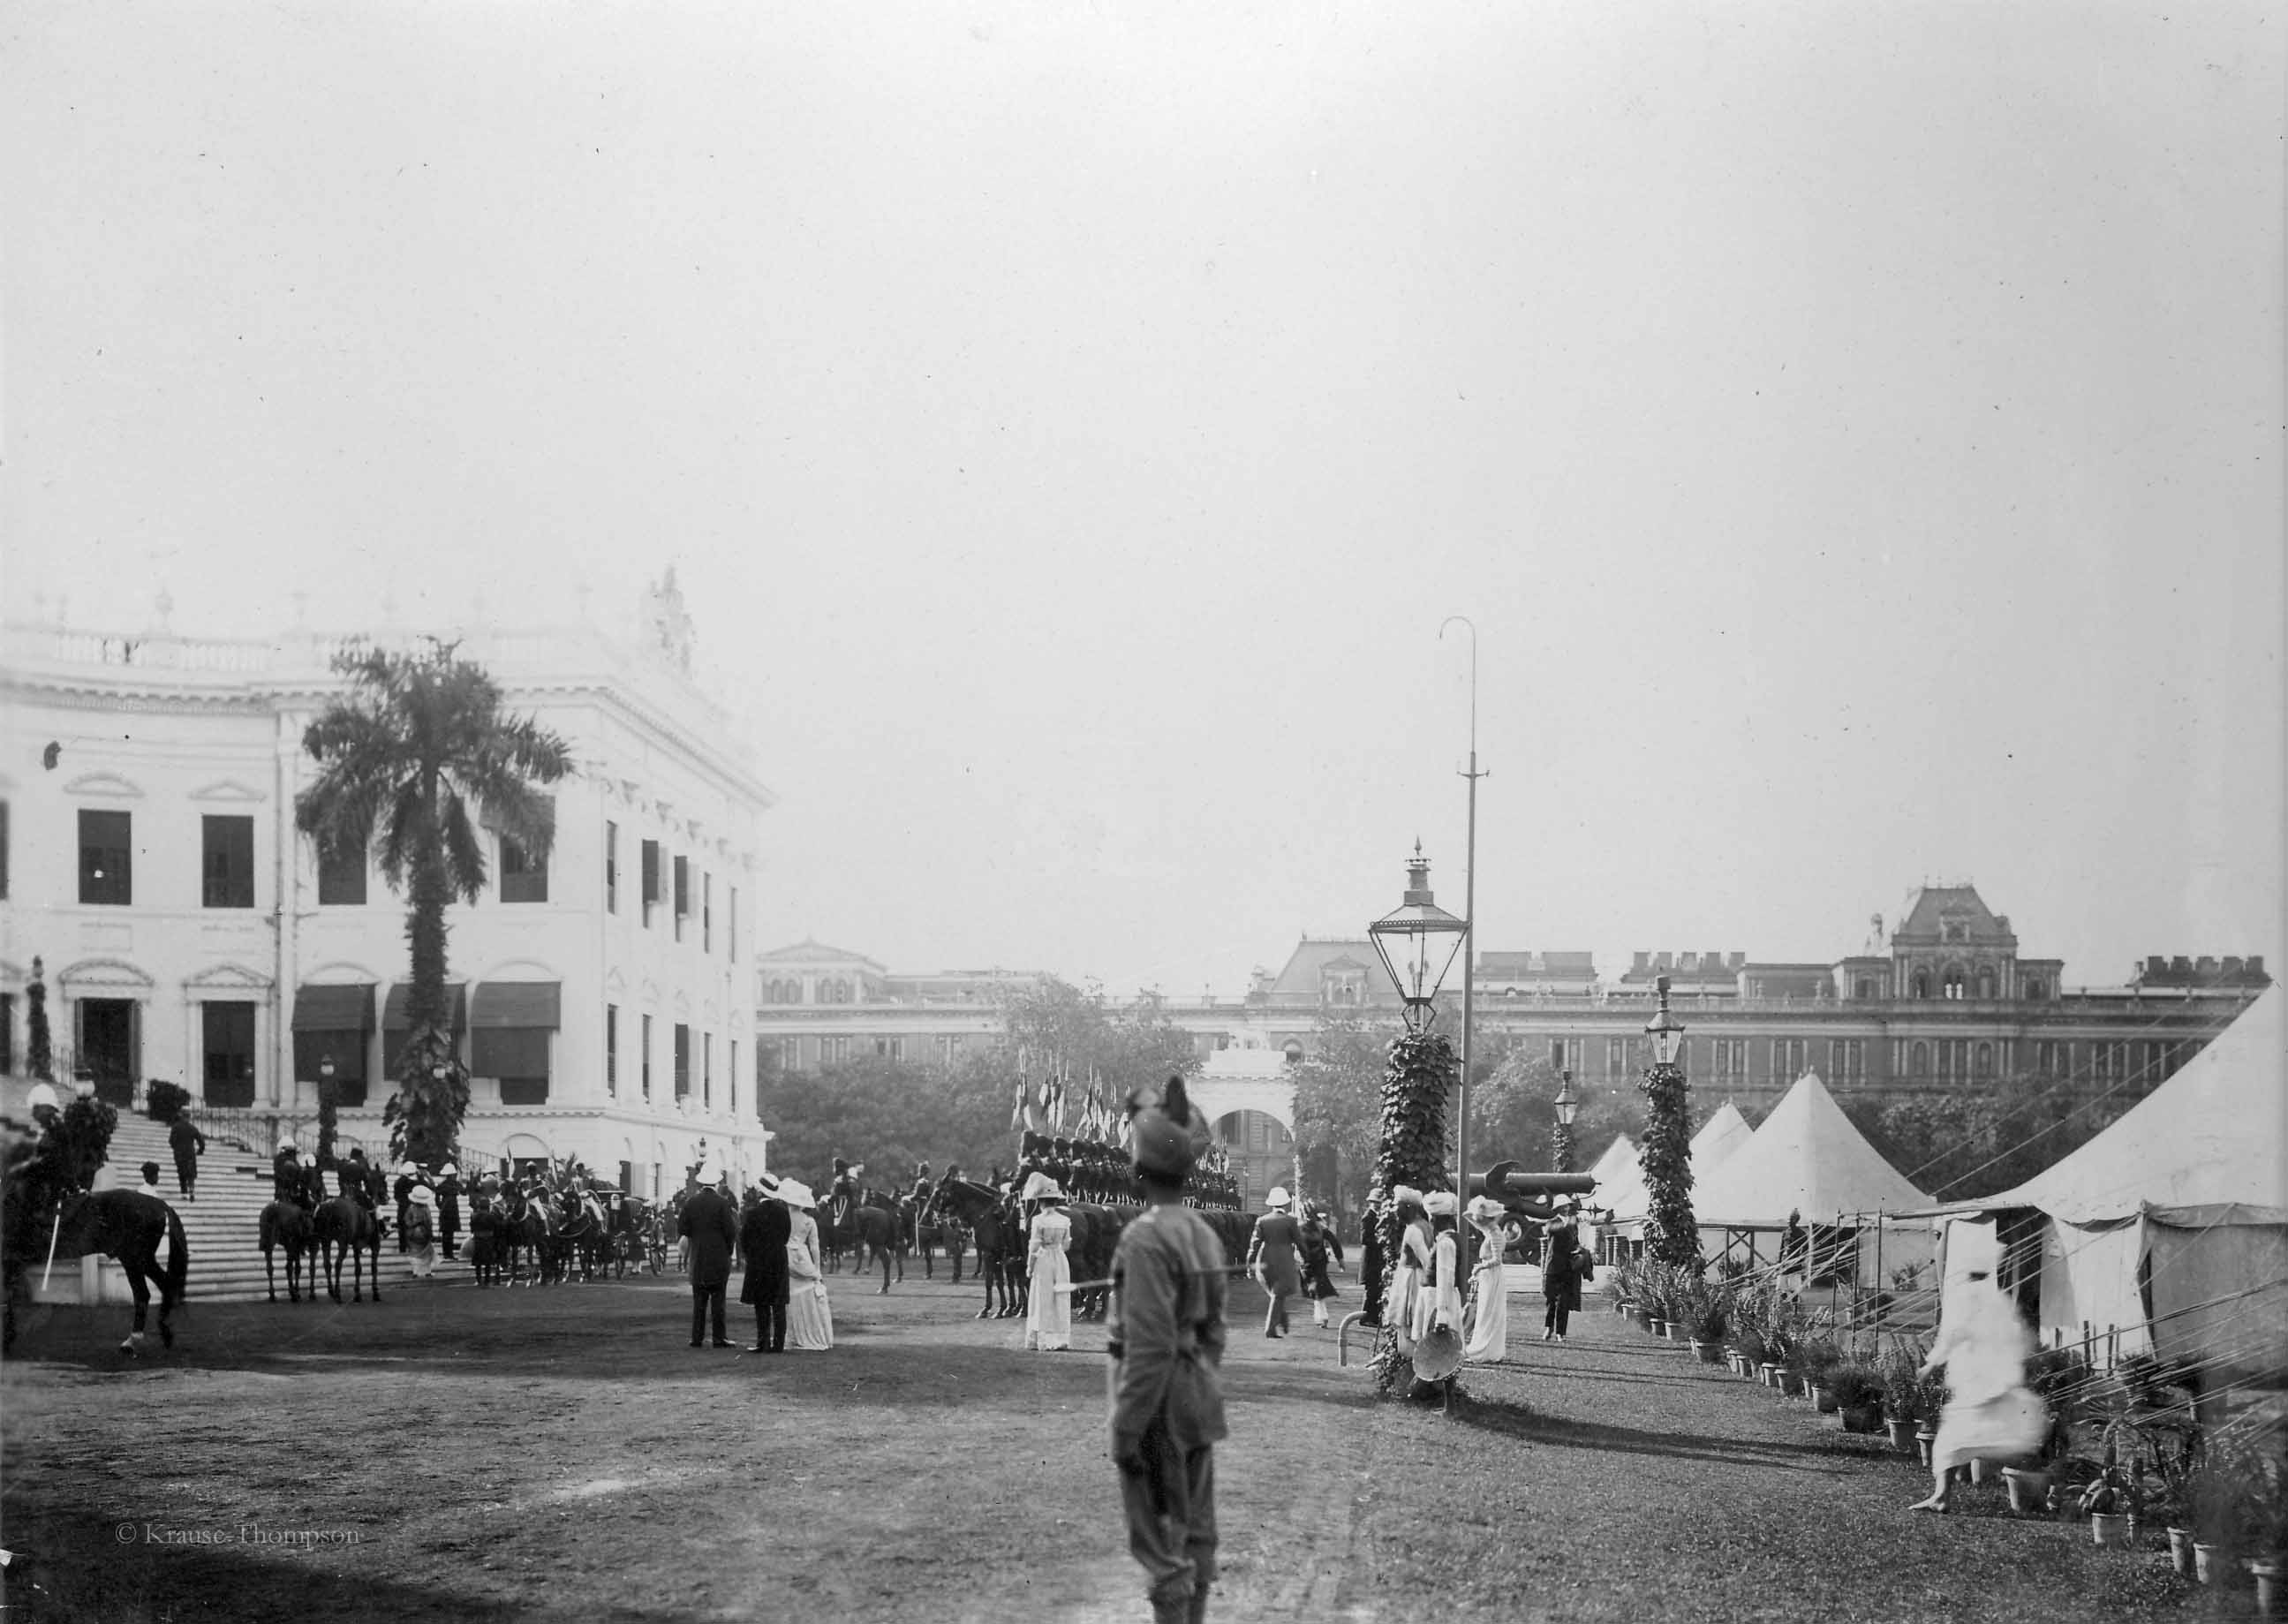 Arrival of prince at Calcutta viceroy palace